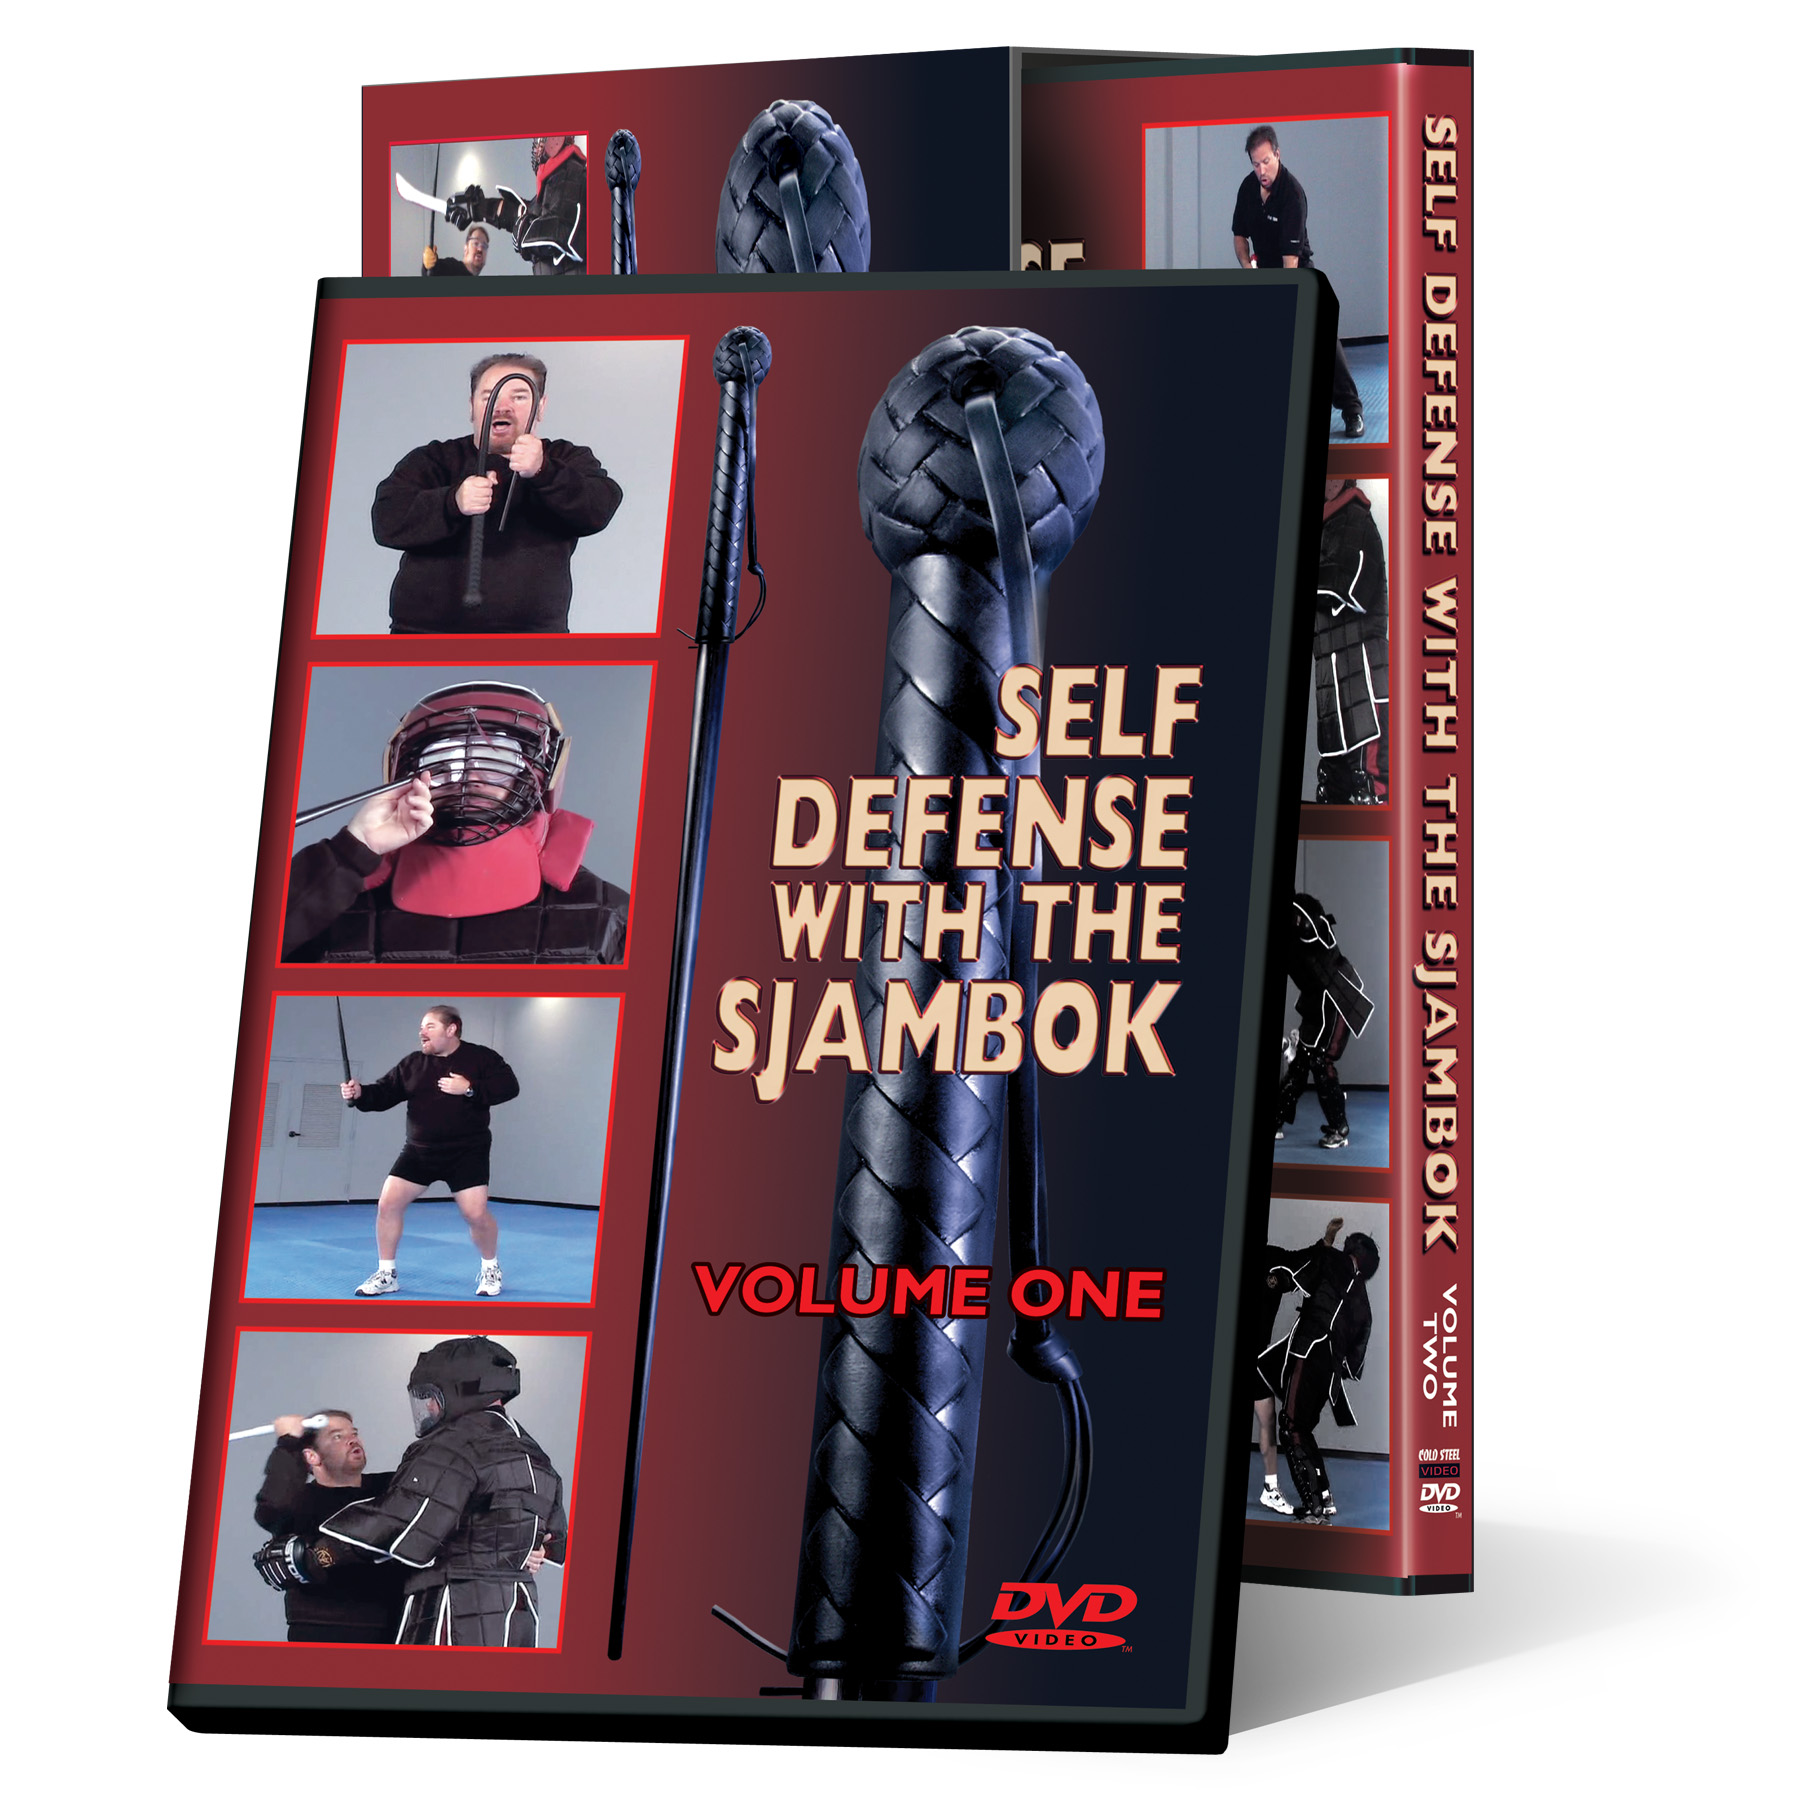 VDFSK - COLD STEEL Self Defense with the Sjambok DVD